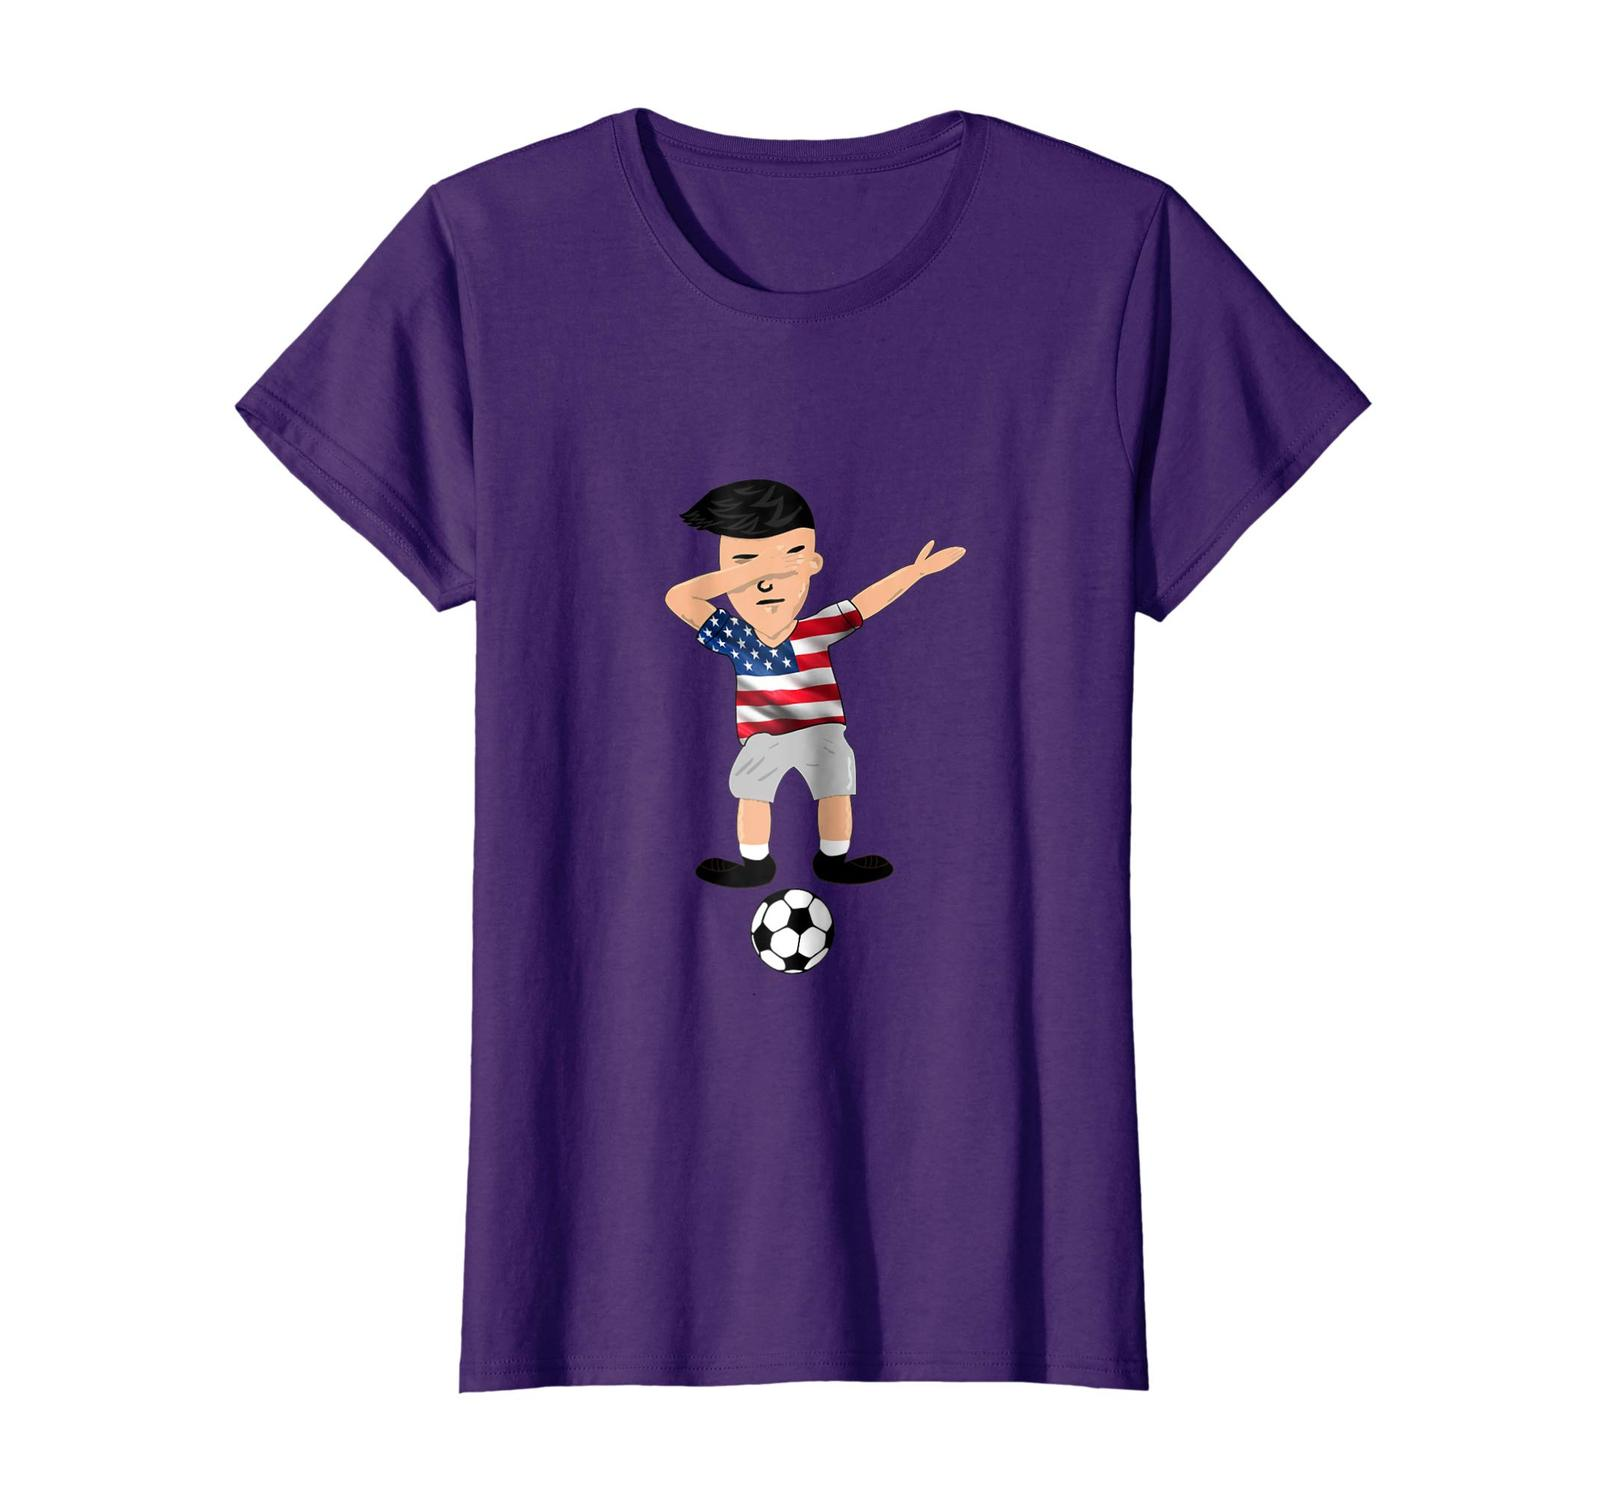 Brother Shirts - Funny Soccer Shirt Dabbing United States T Shirt Wowen